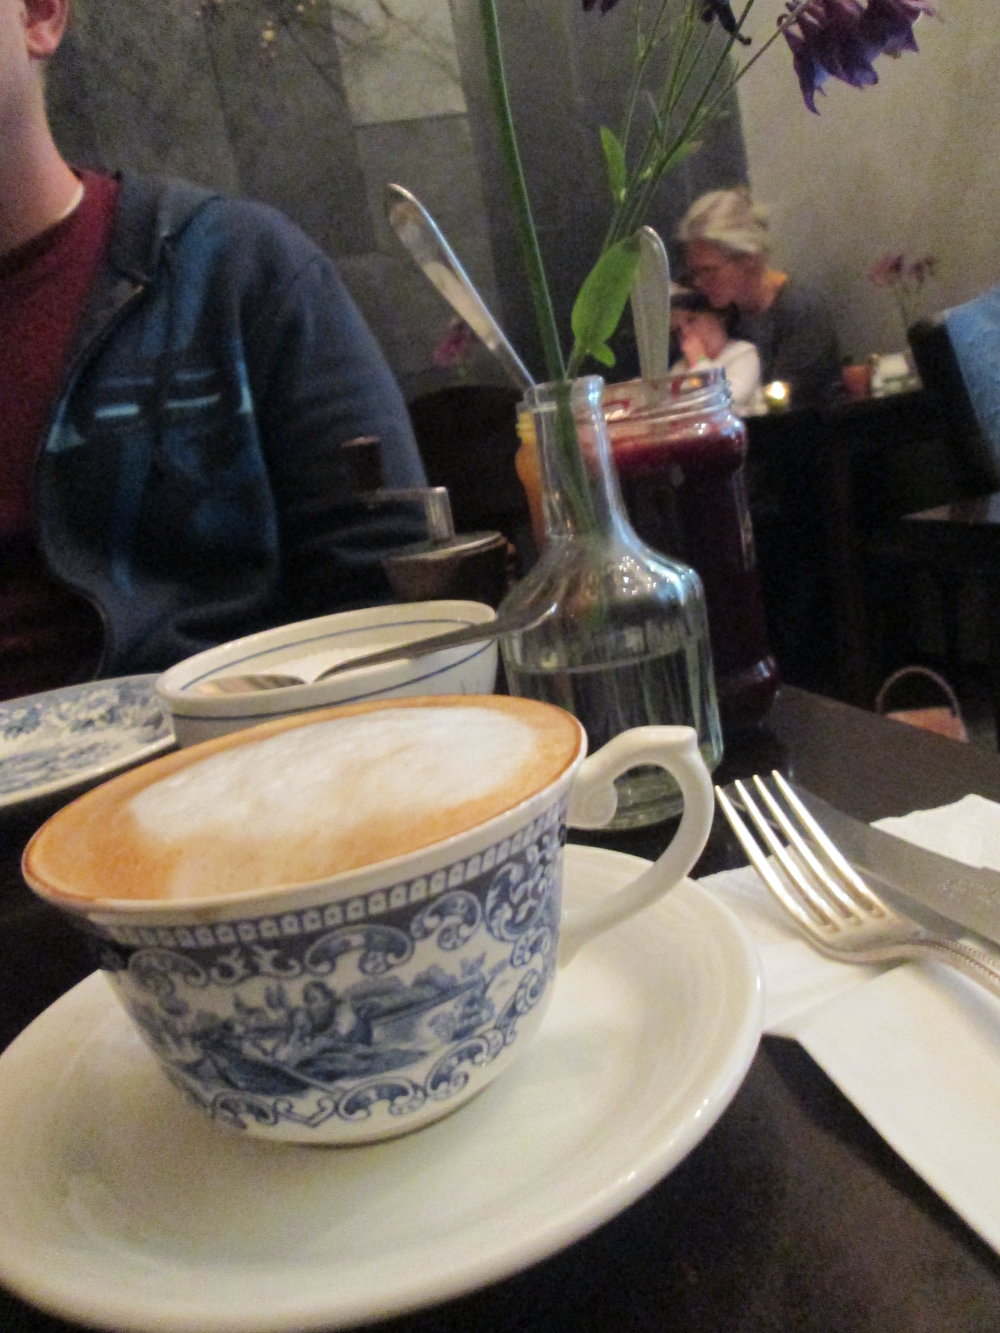 Brunch with Mama at the #1 Yelped place in Amsterdam, Gartine.